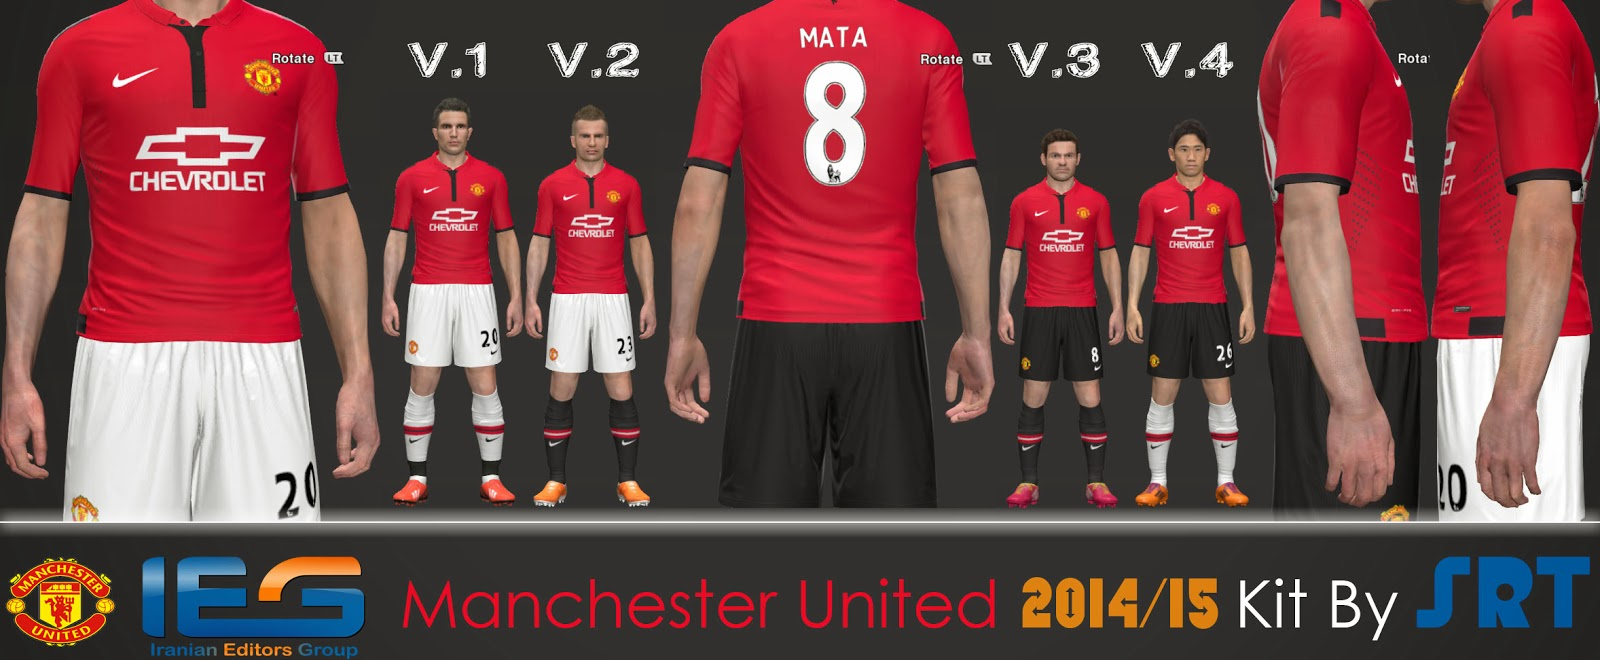 PES 2014 Manchester United 2014-15 Kit By SRT